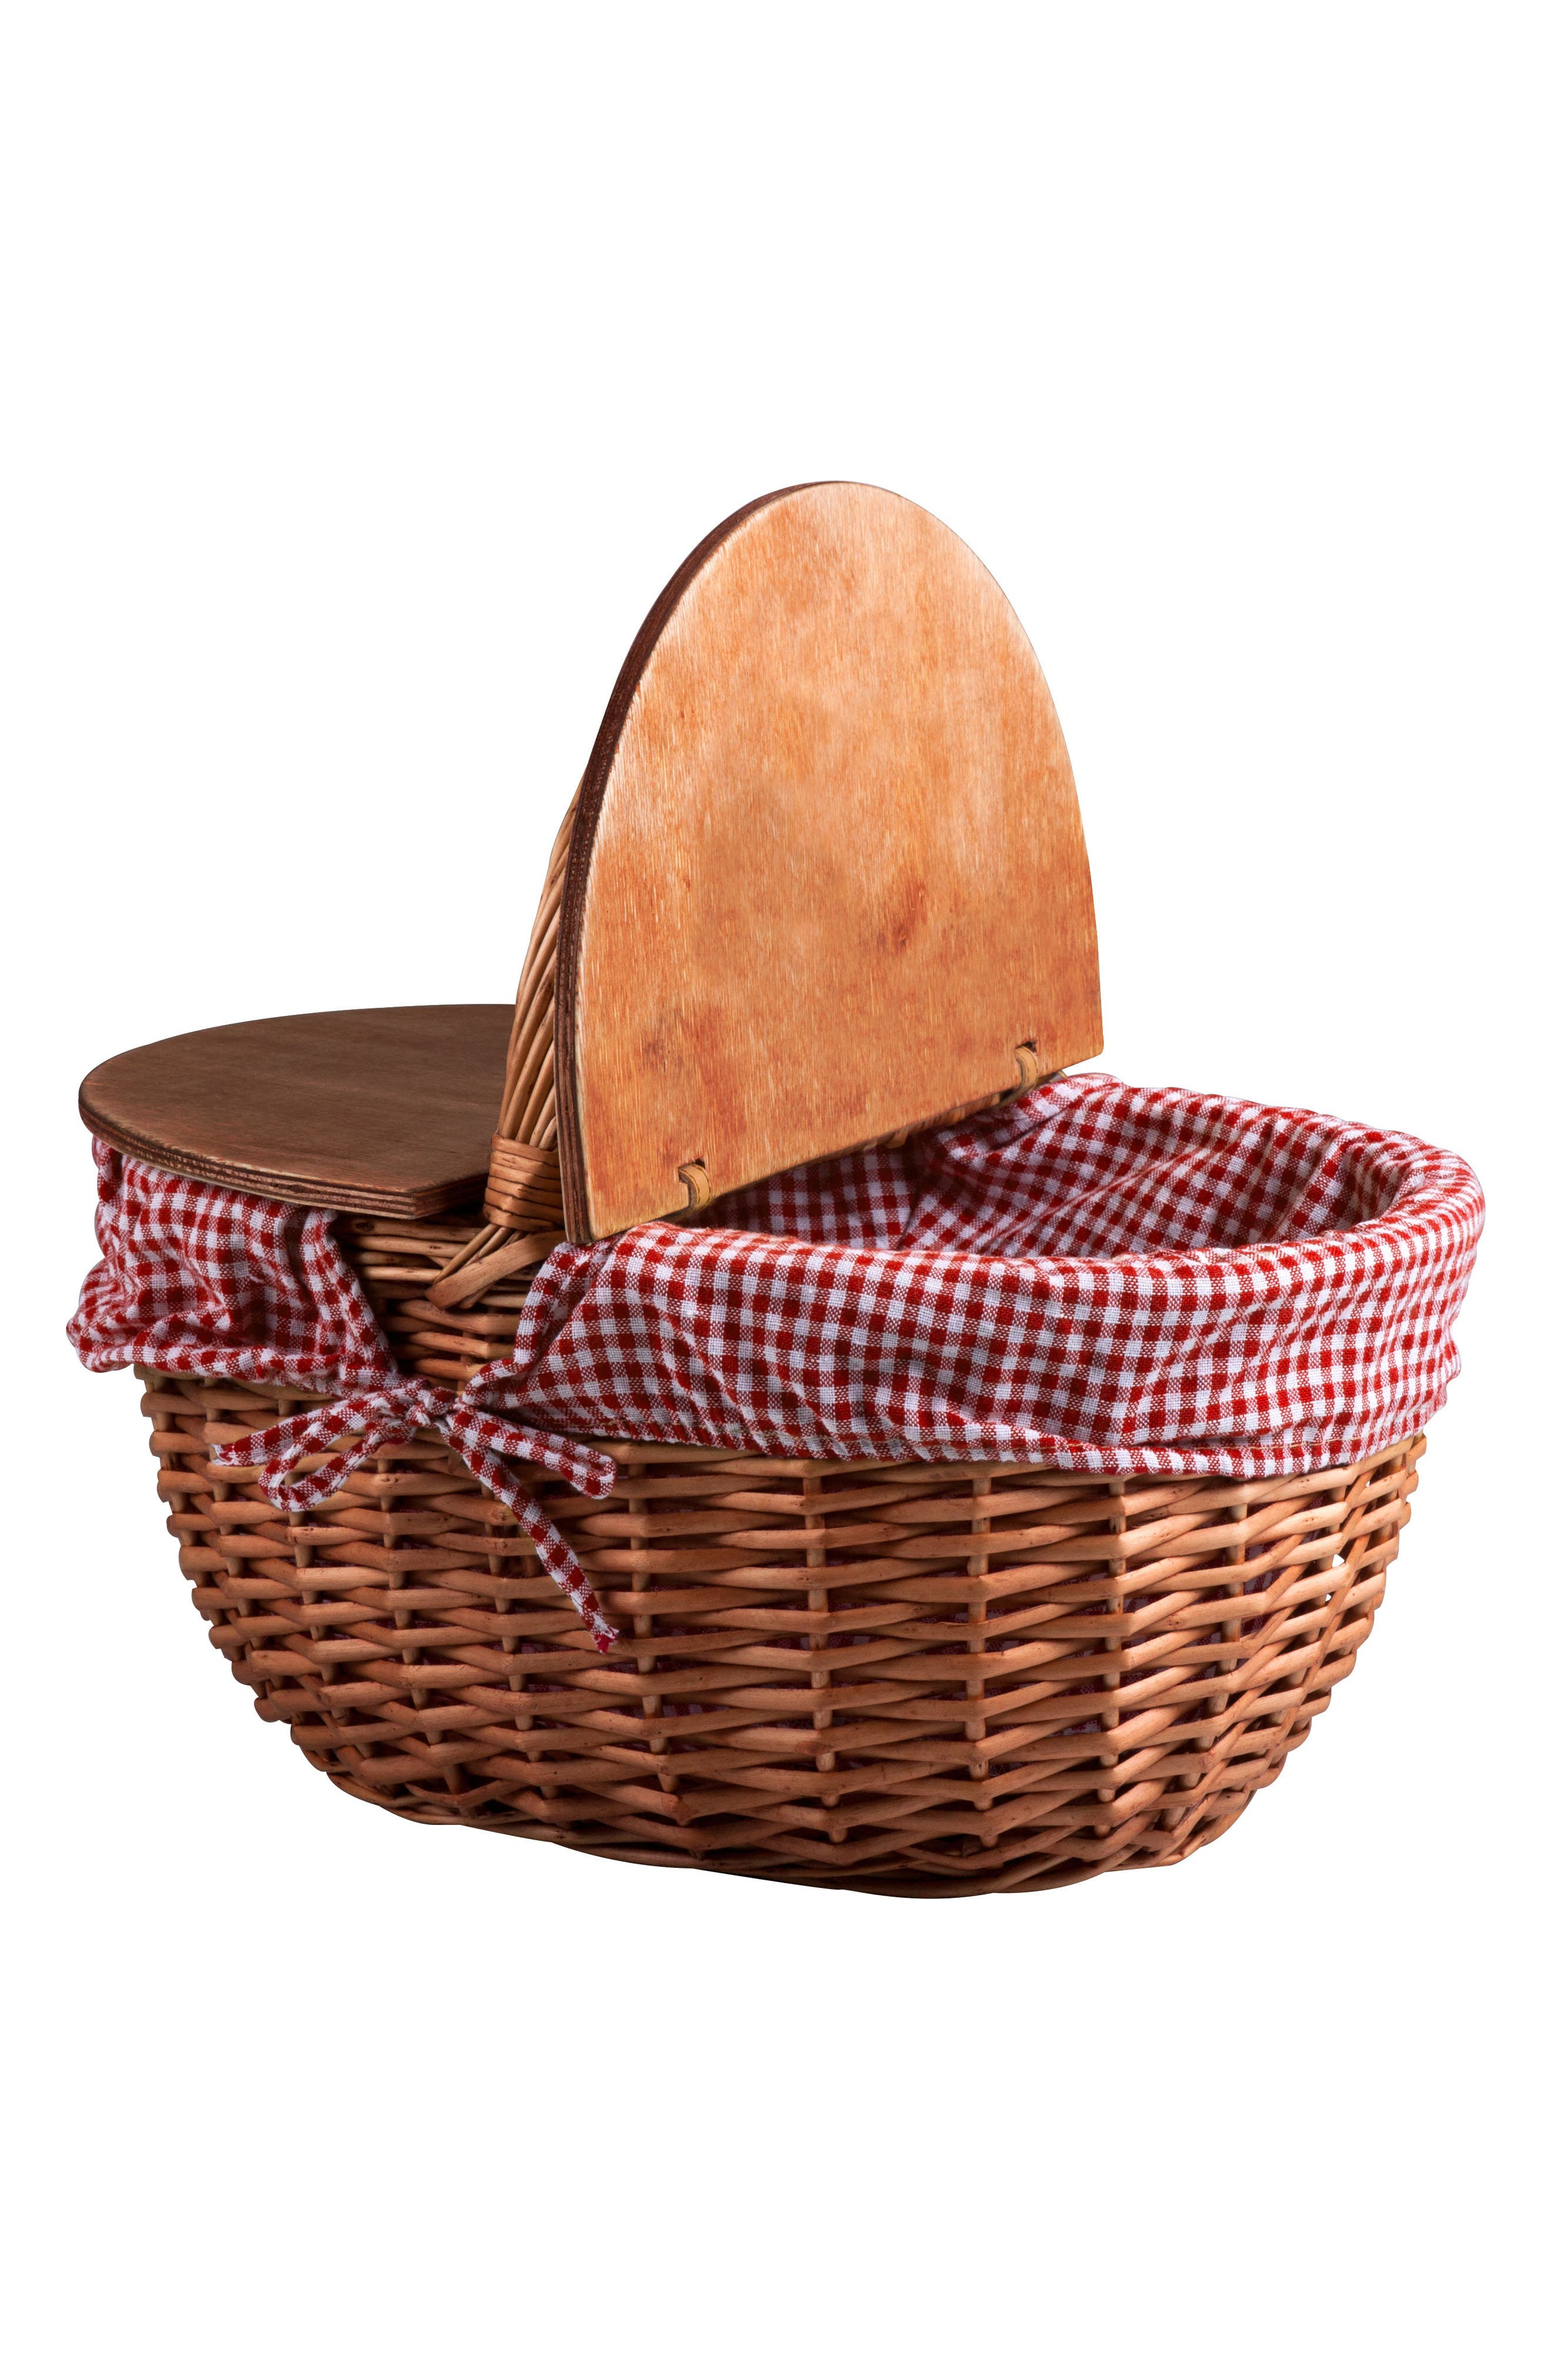 Country Wicker Picnic Basket,                             Alternate thumbnail 3, color,                             200